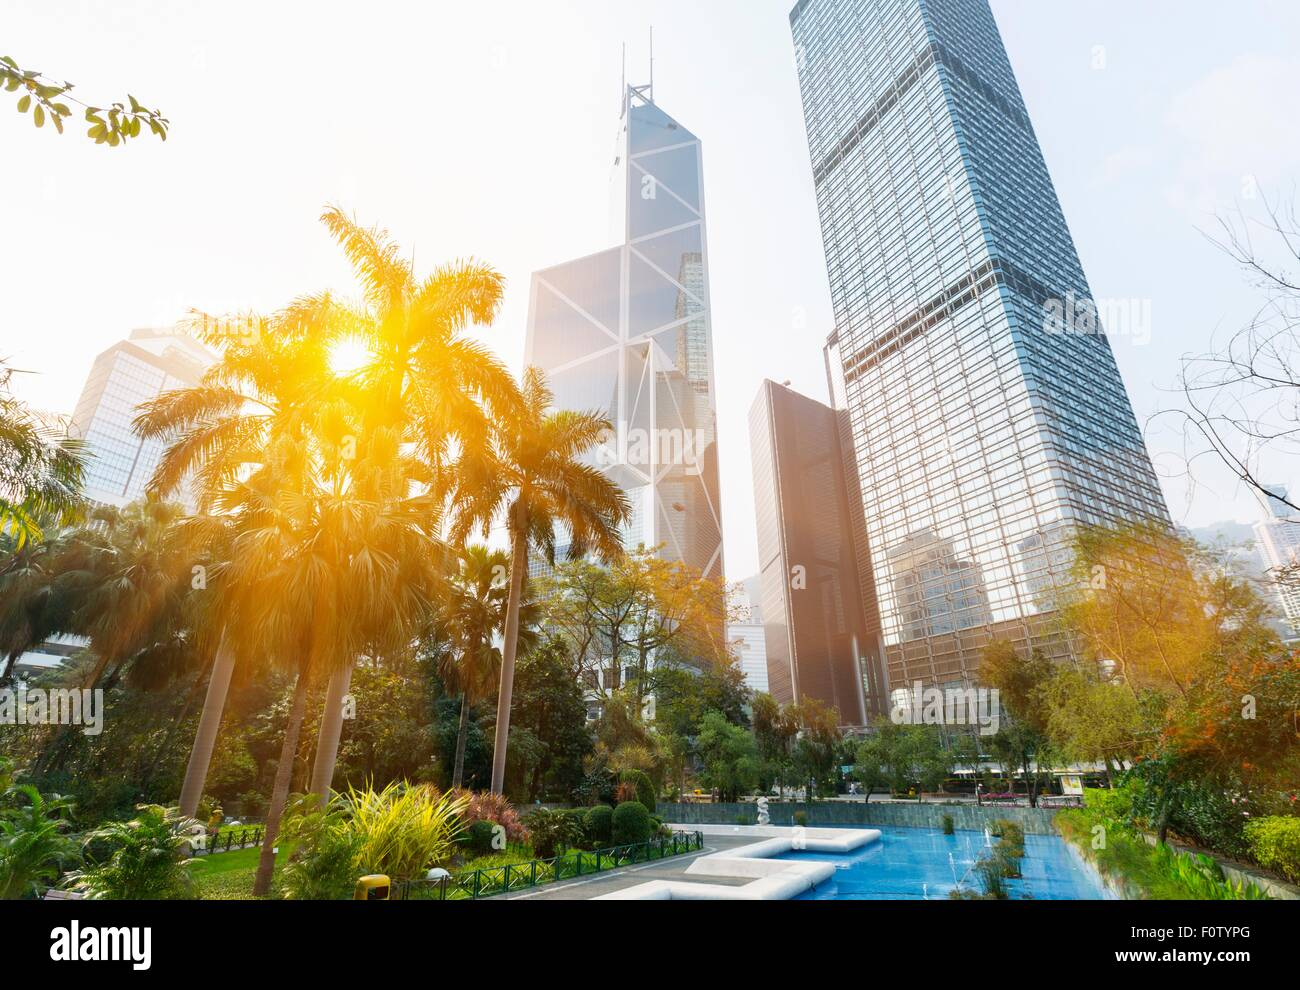 Statue square skyline including Bank of China building, Cheung Kong Center, Hong Kong, China - Stock Image